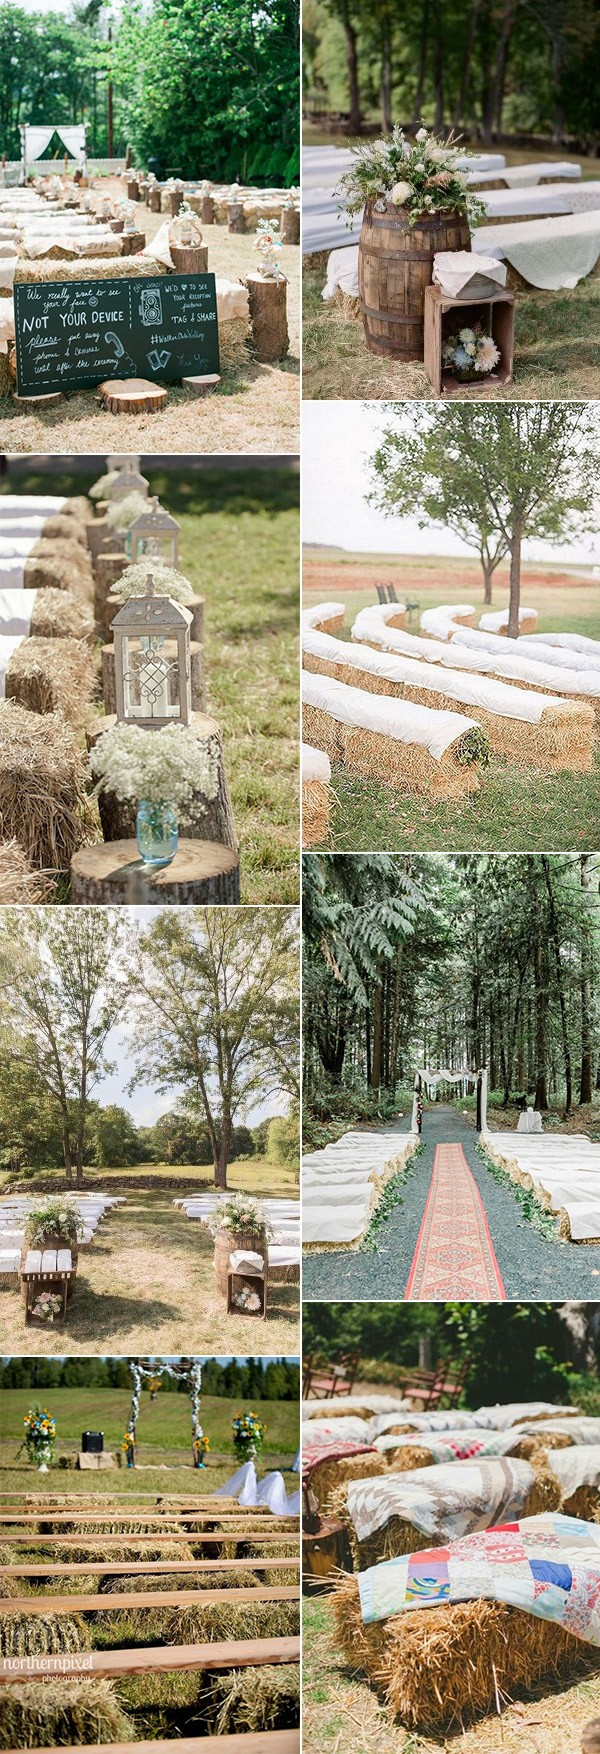 hay bales seating ideas for outdoor rustic weddings